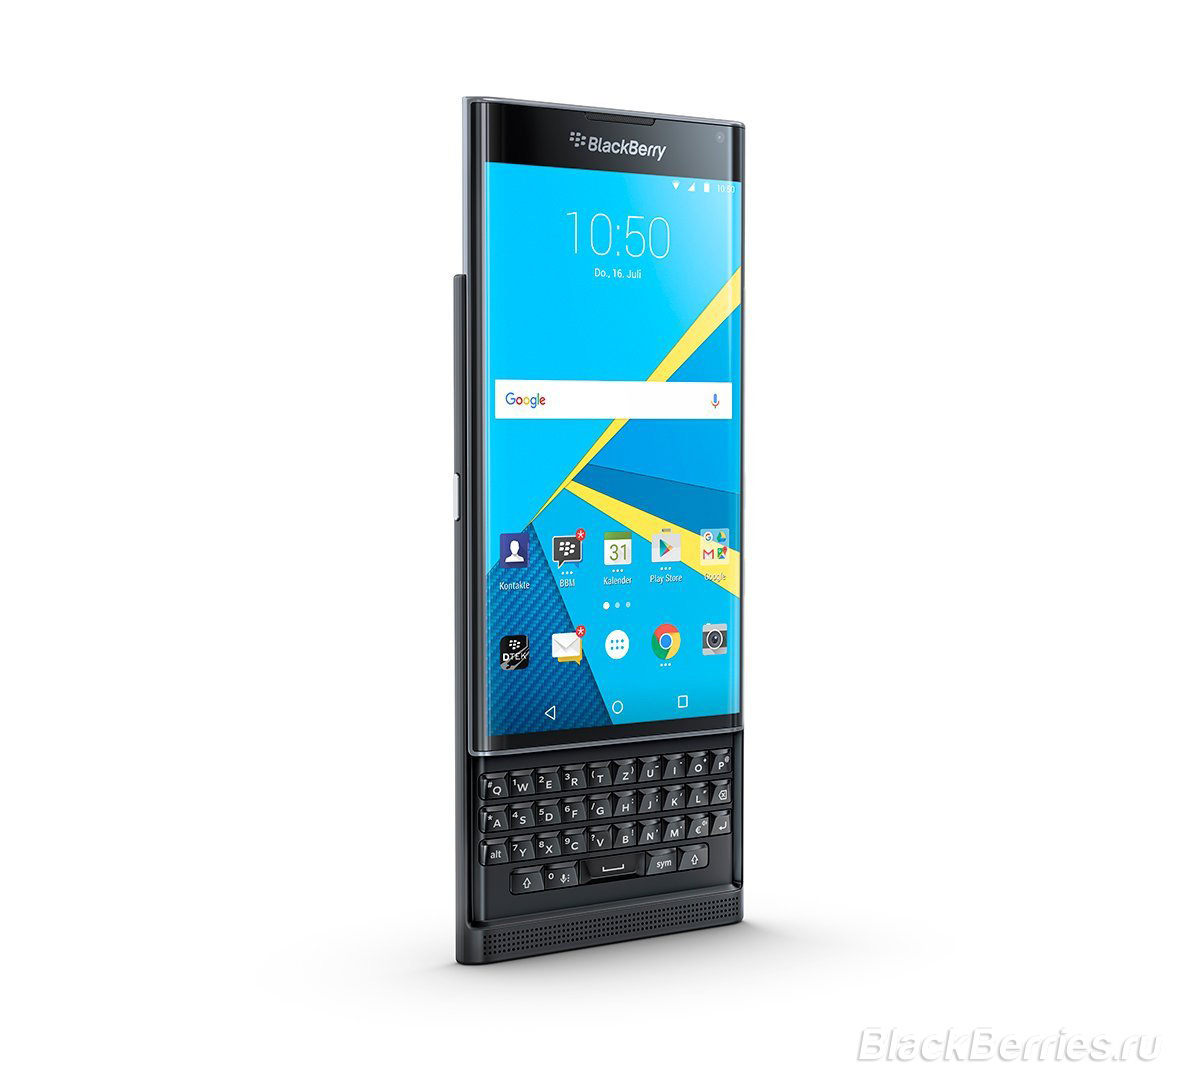 BlackBerry-Priv-Shop-10 copy